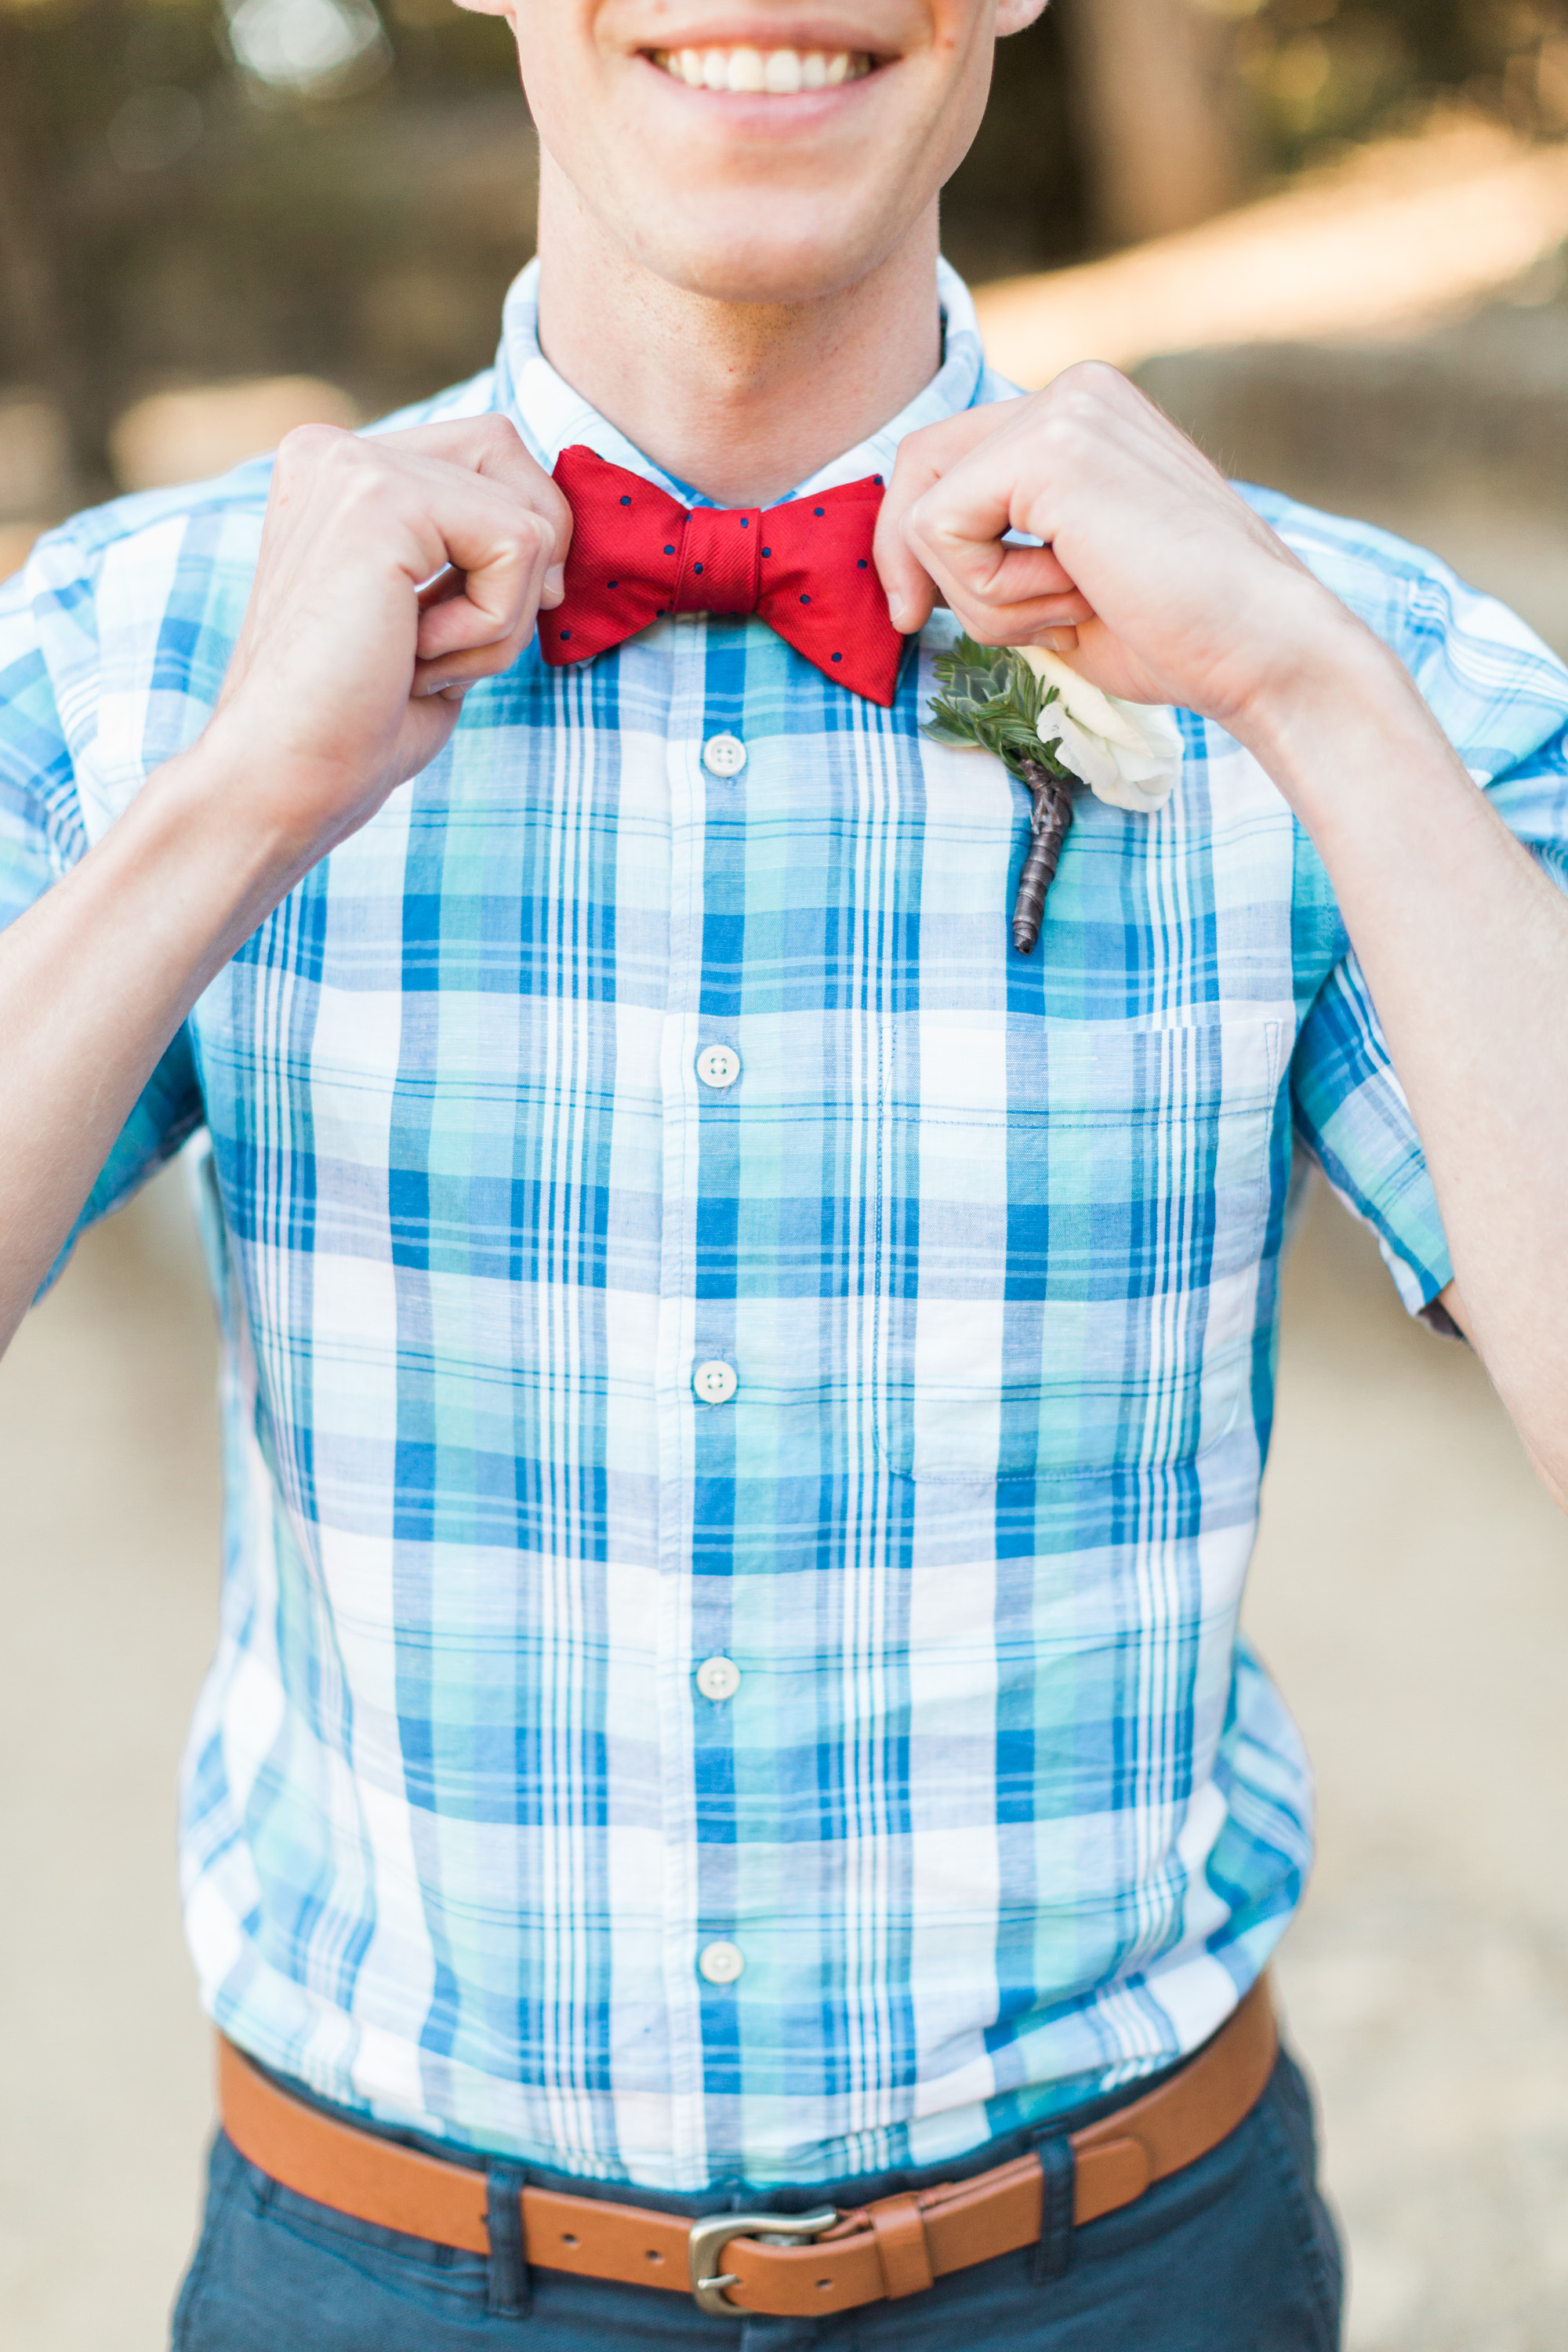 Groom straightening bowtie